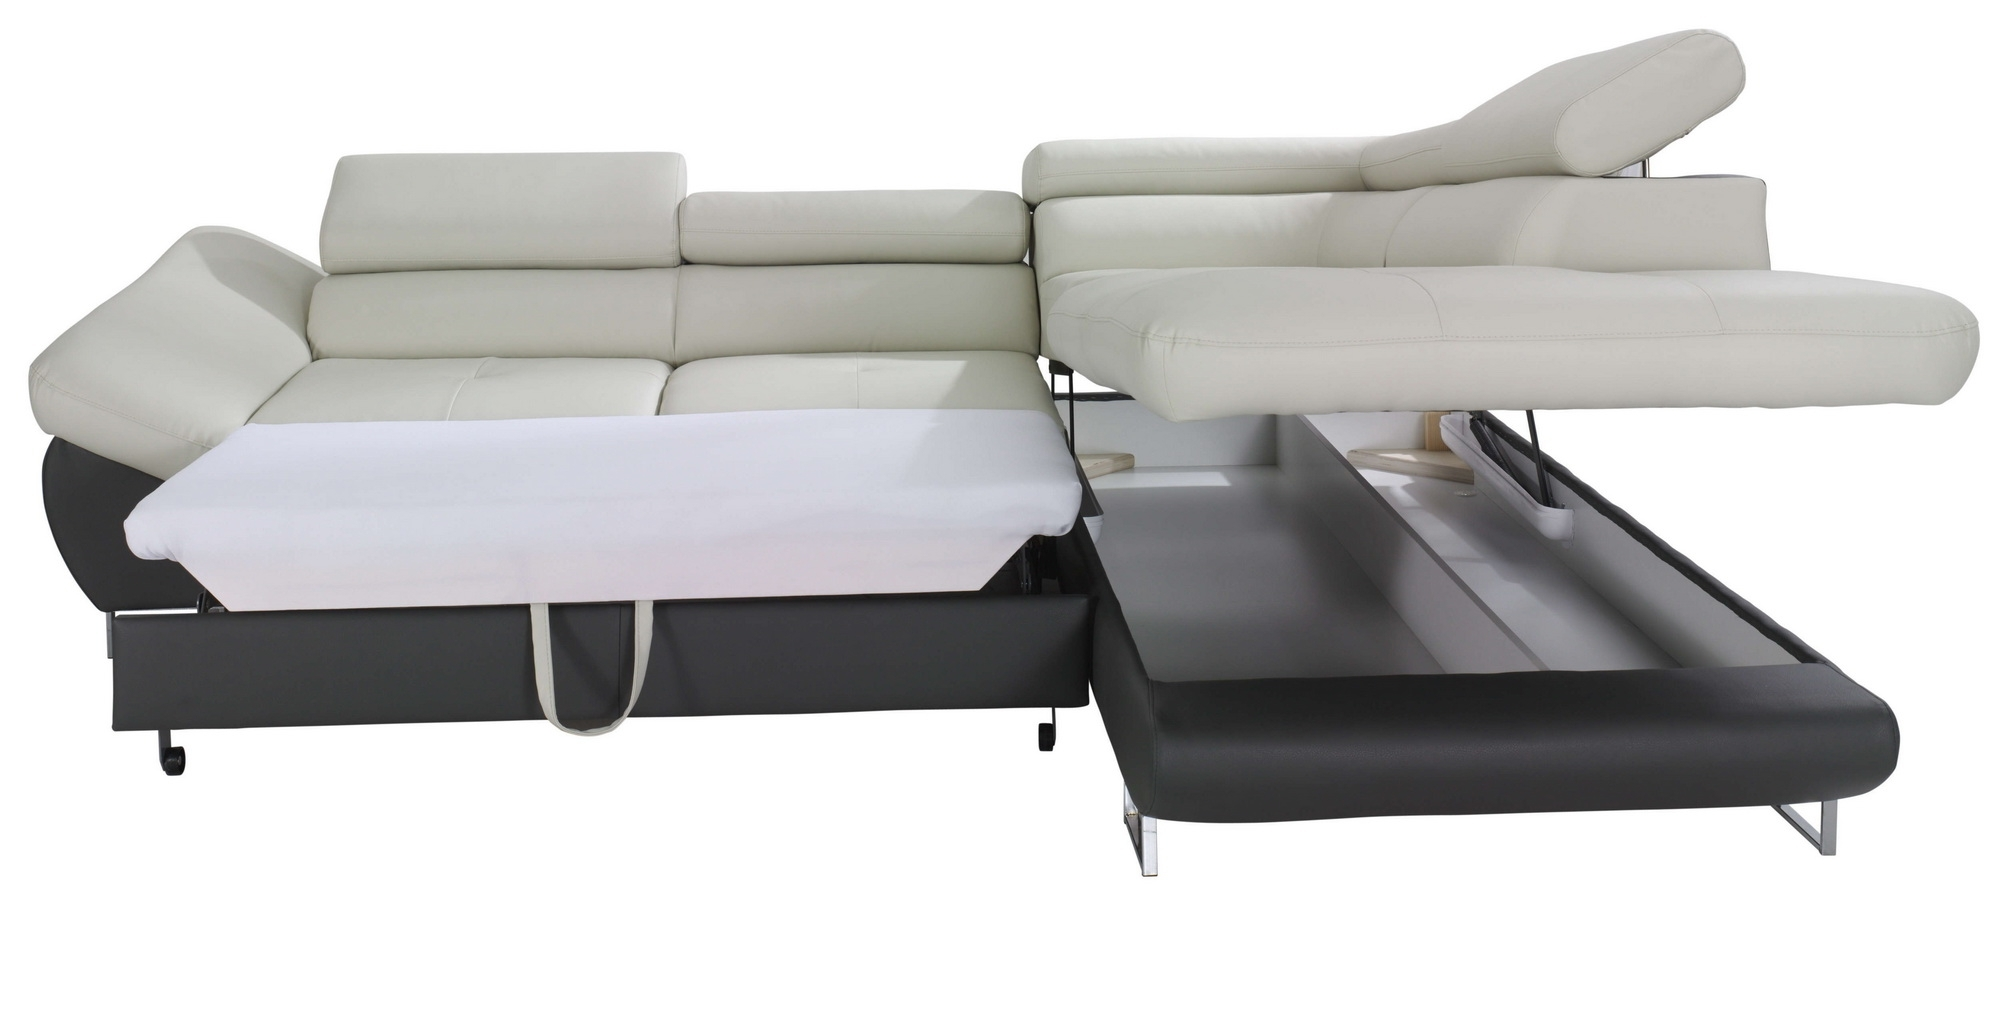 Most Popular Sleeper Sofas With Storage Chaise Regarding Fabio Sectional Sofa Sleeper With Storage, Creative Furniture (View 4 of 15)